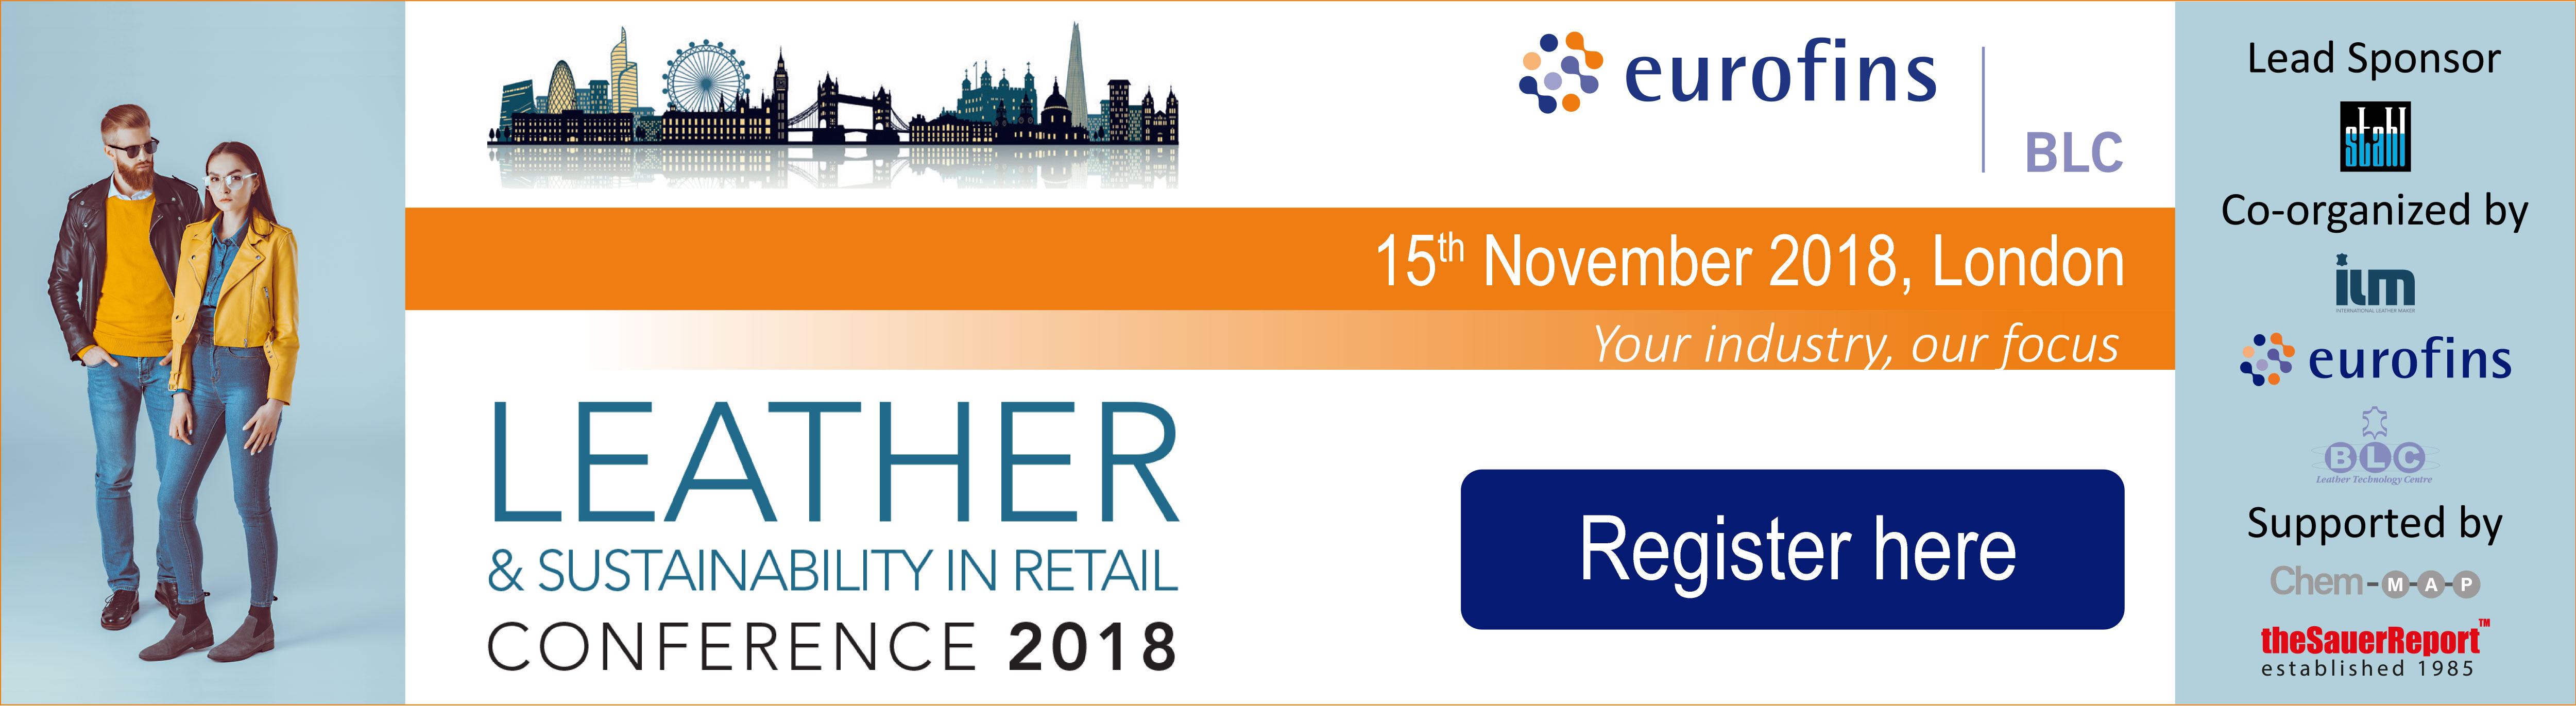 BLC Leather and Sustainability in Retail conference 2018